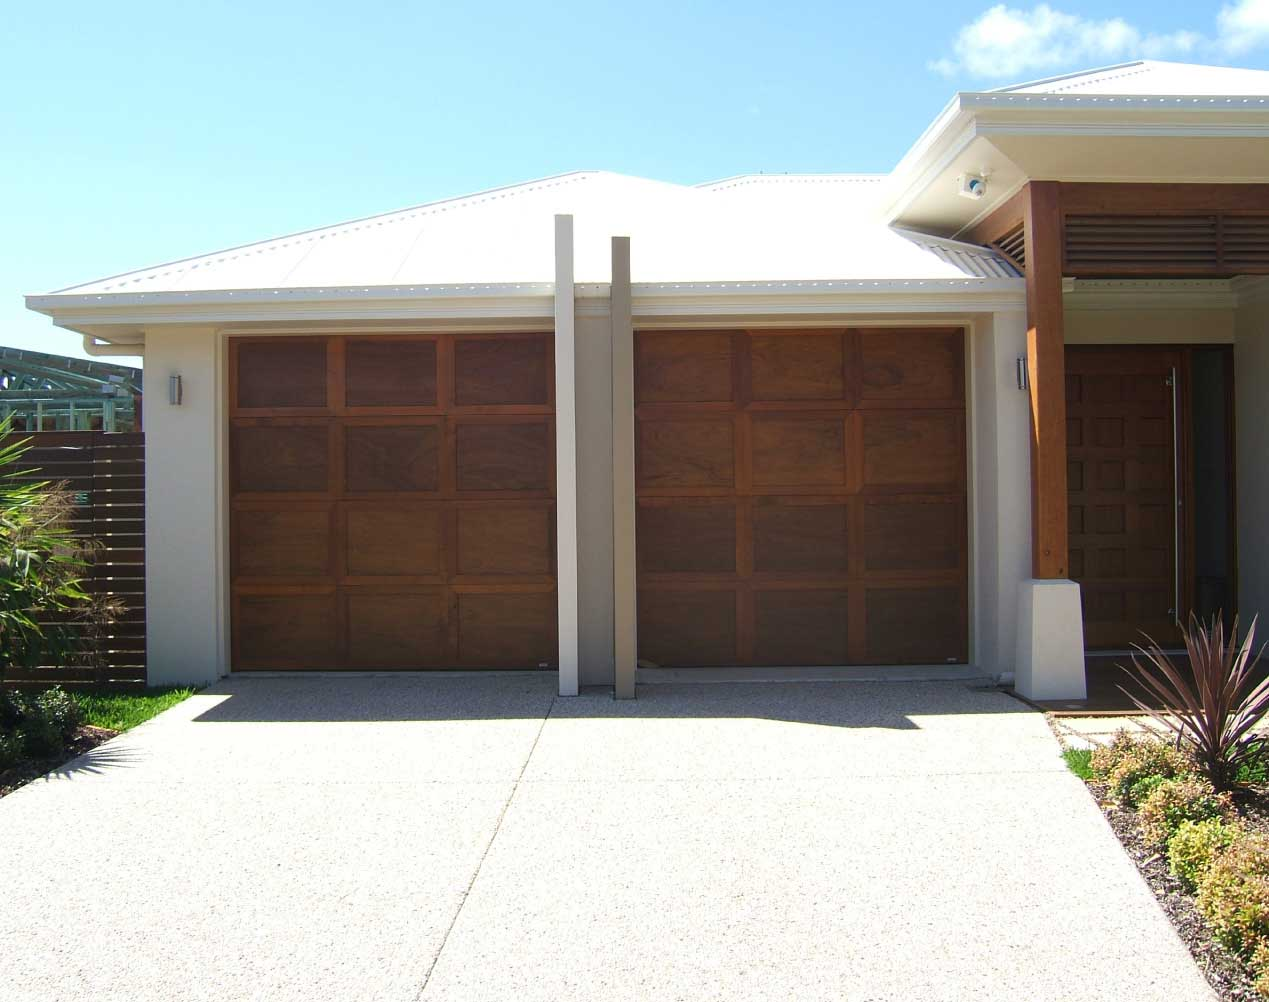 Queensland Custom Garage Door Gallery Noosa Garage Doors